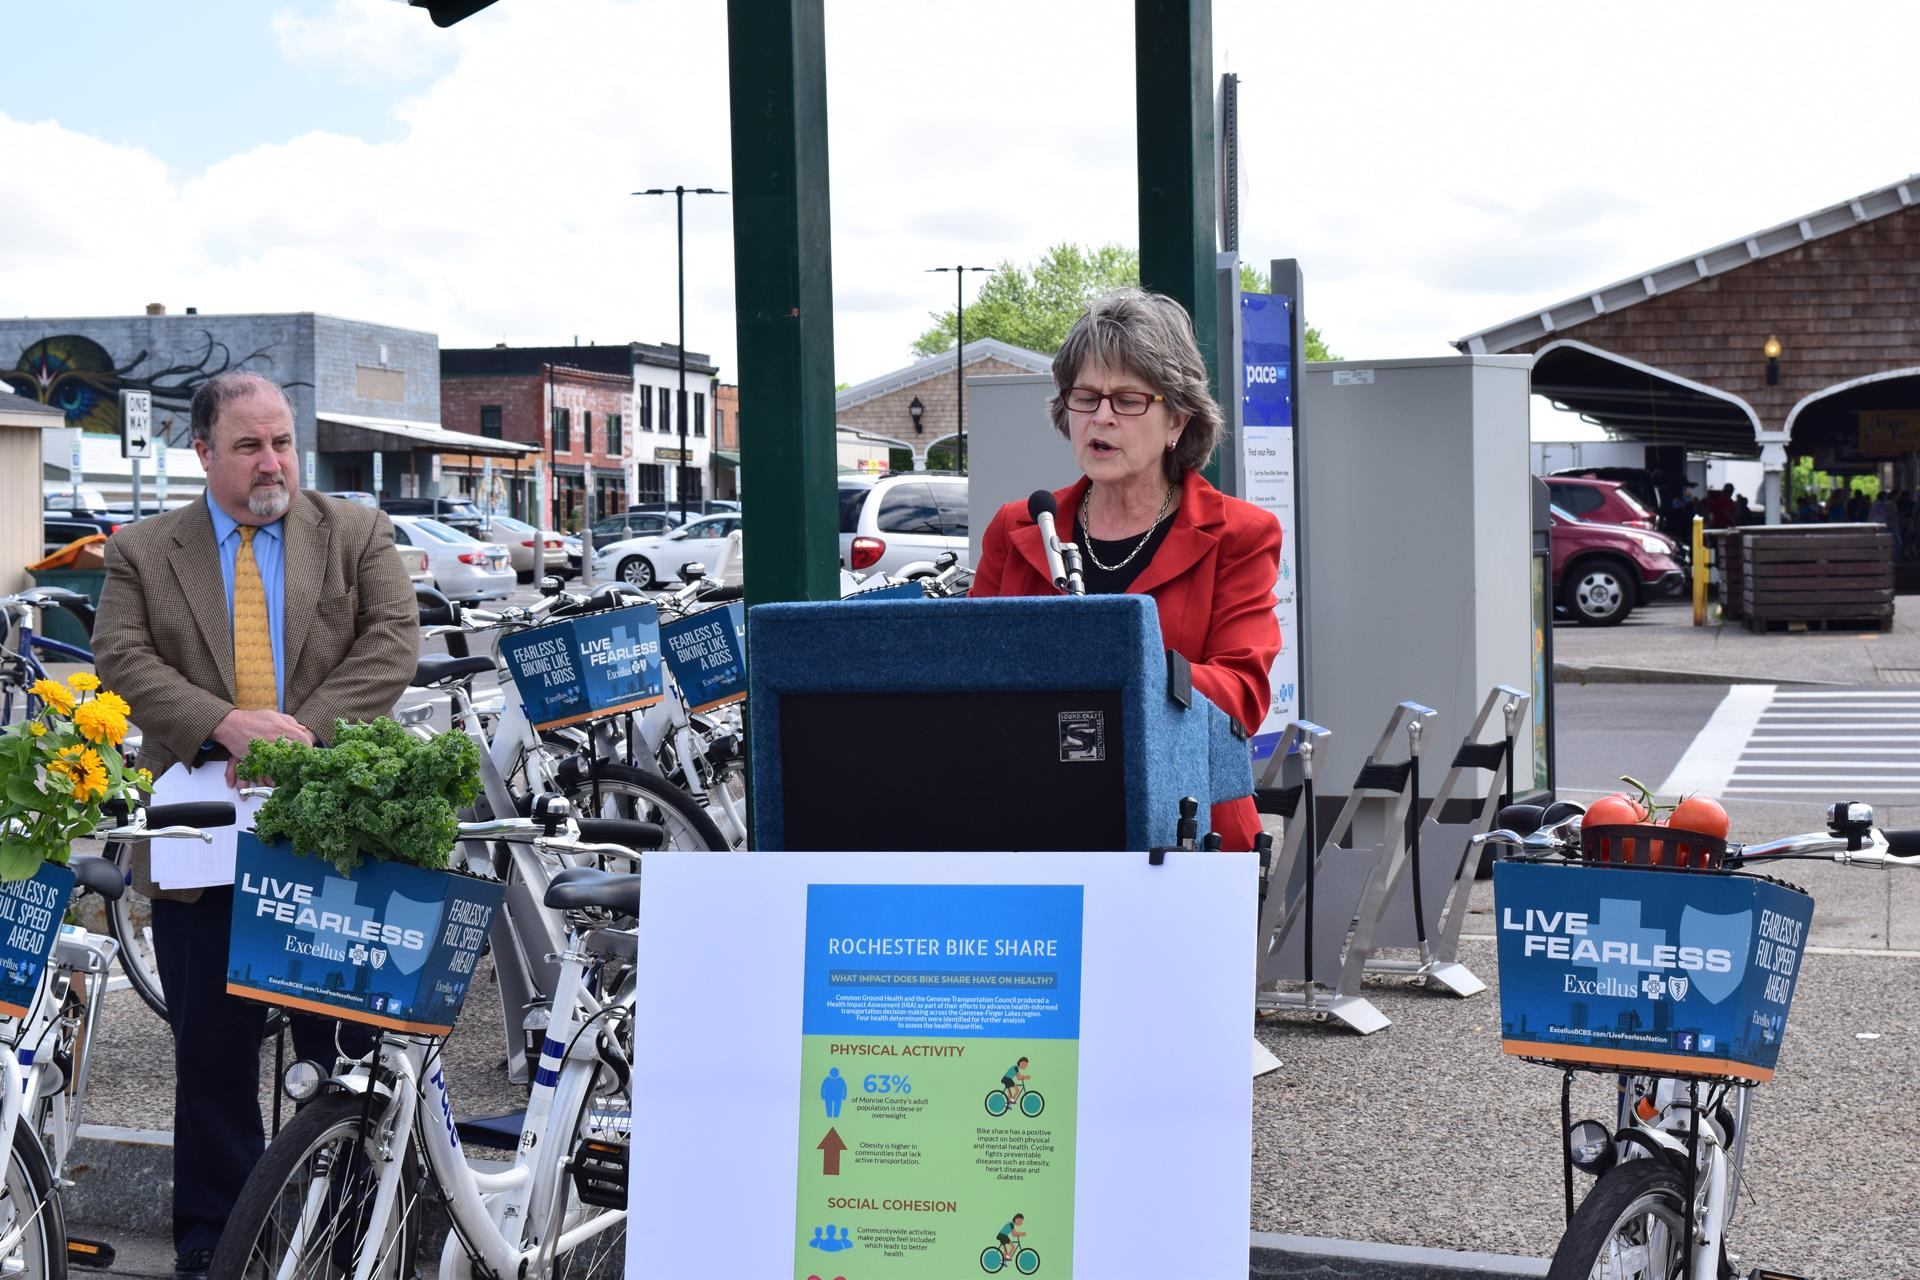 Bike share could improve public health, study finds